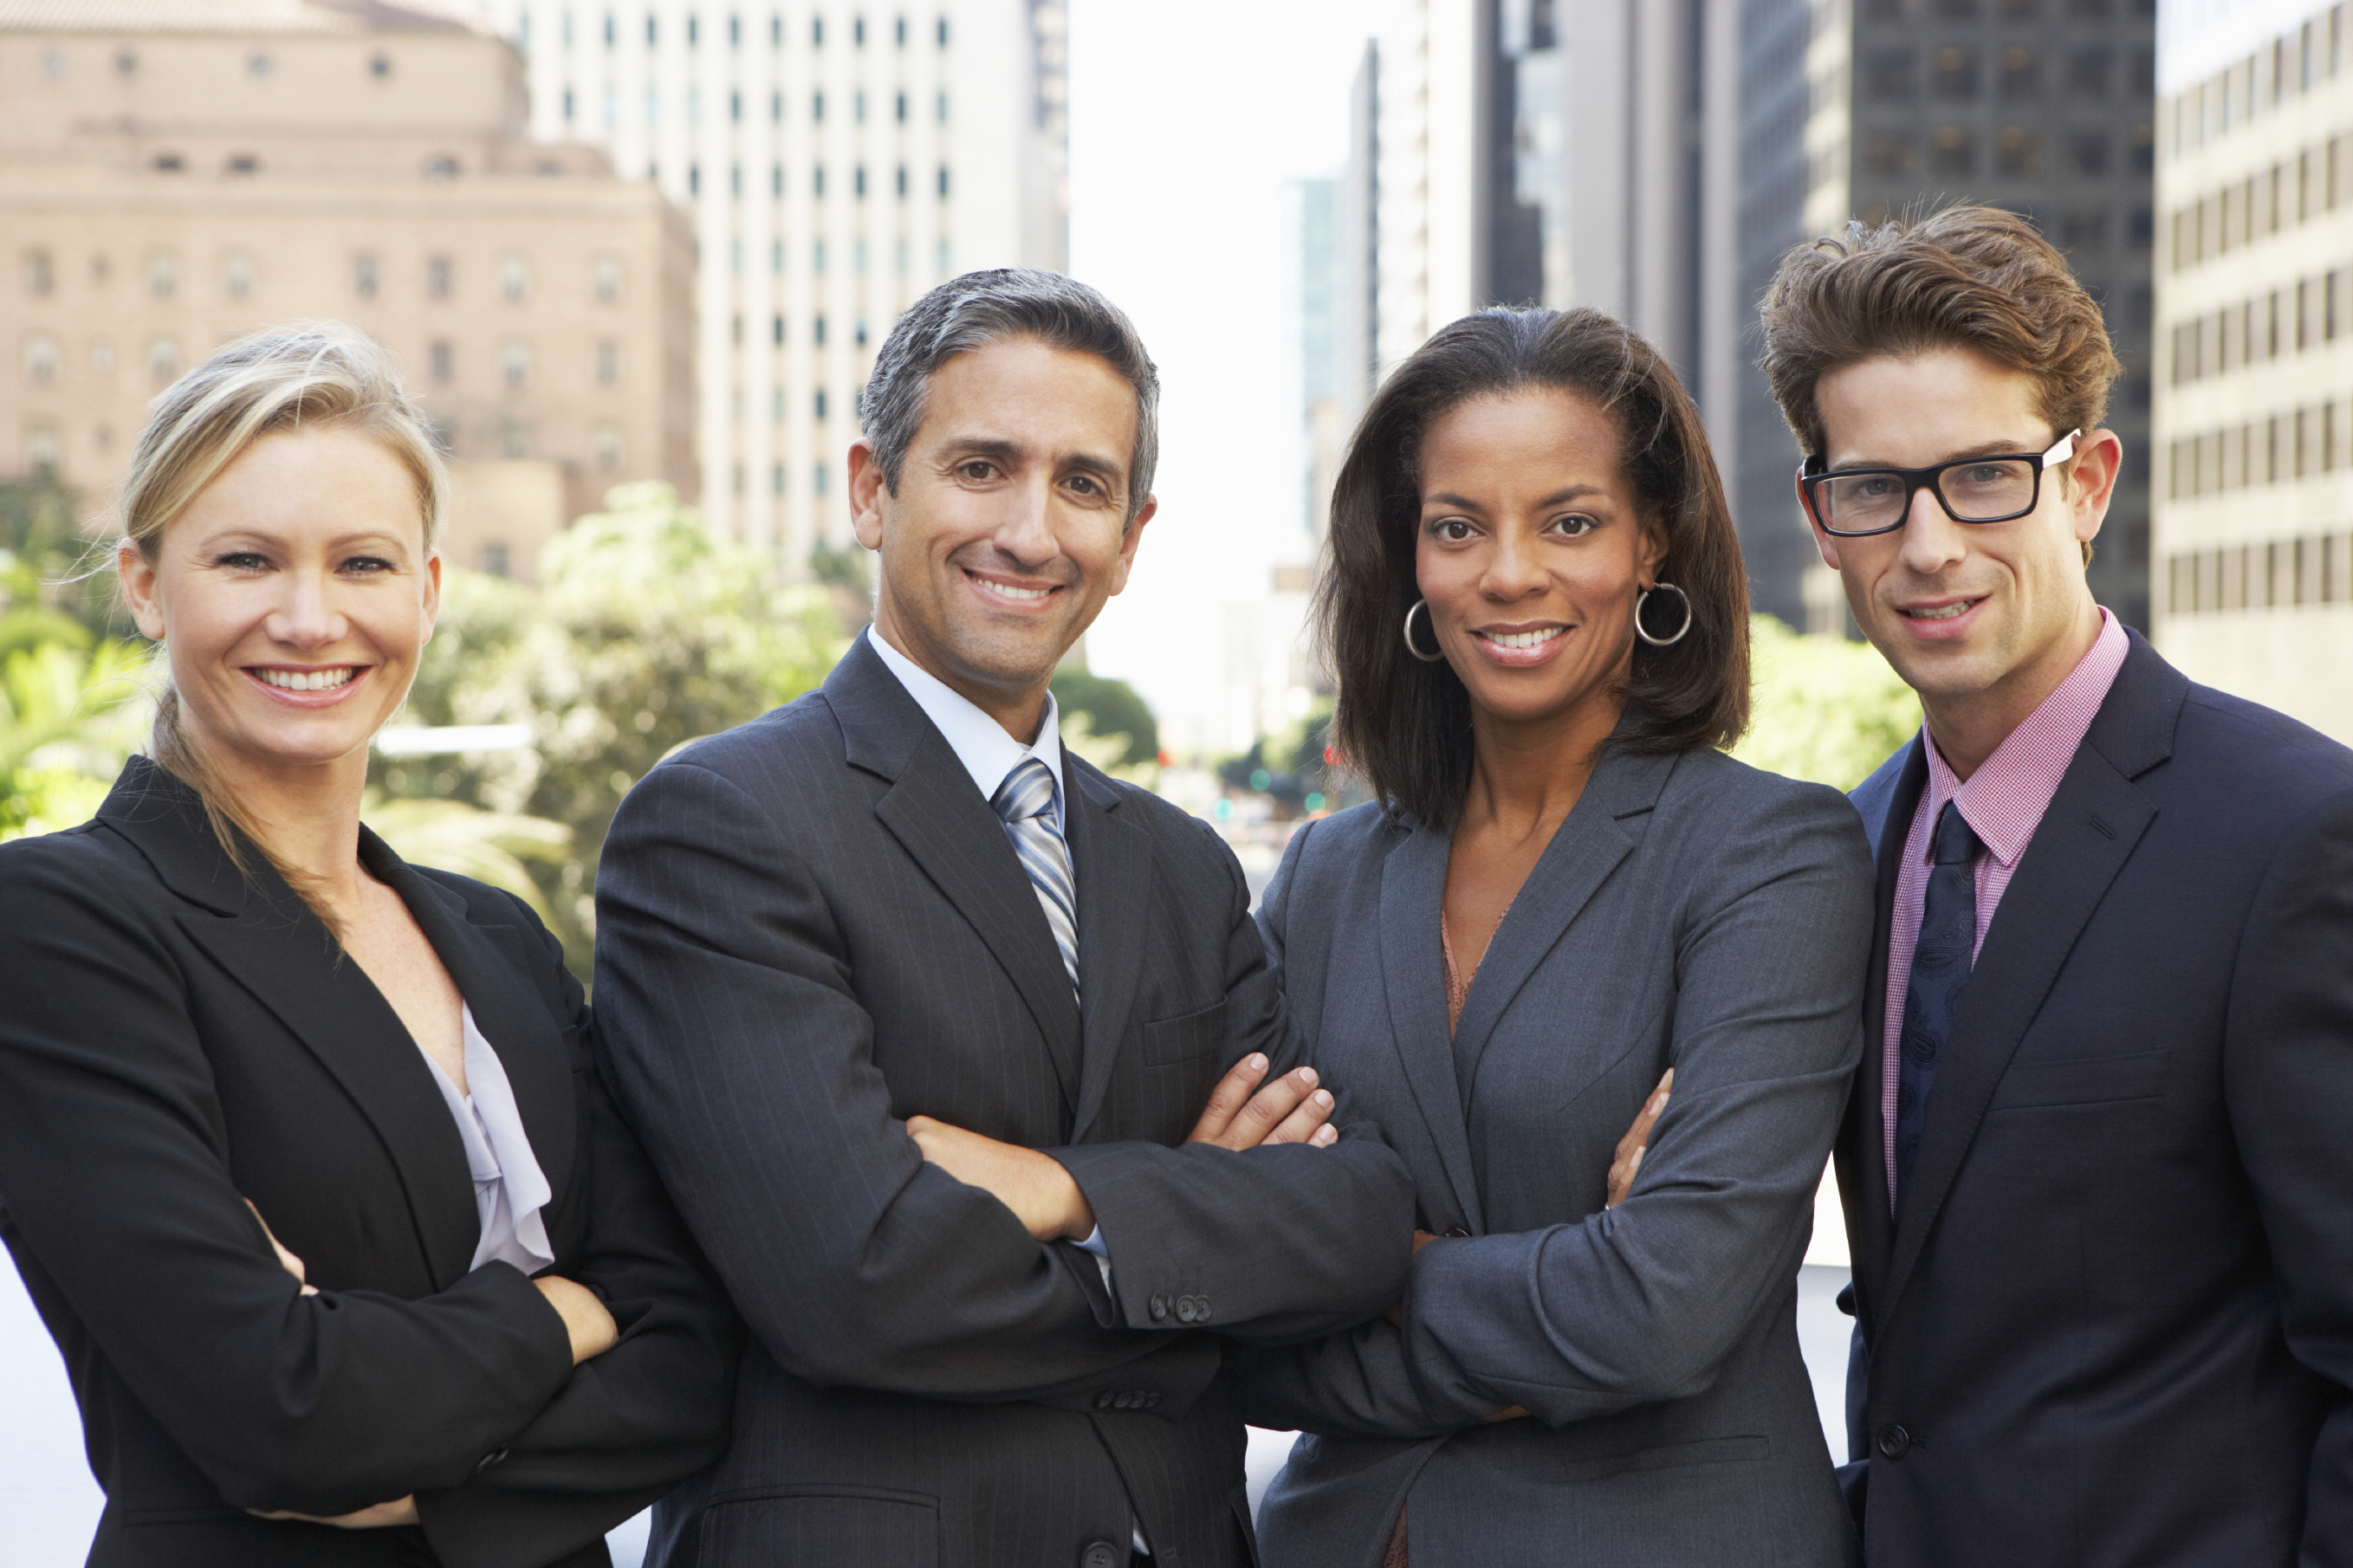 Commercial Lawyers Corporate Lawyers And Corporate